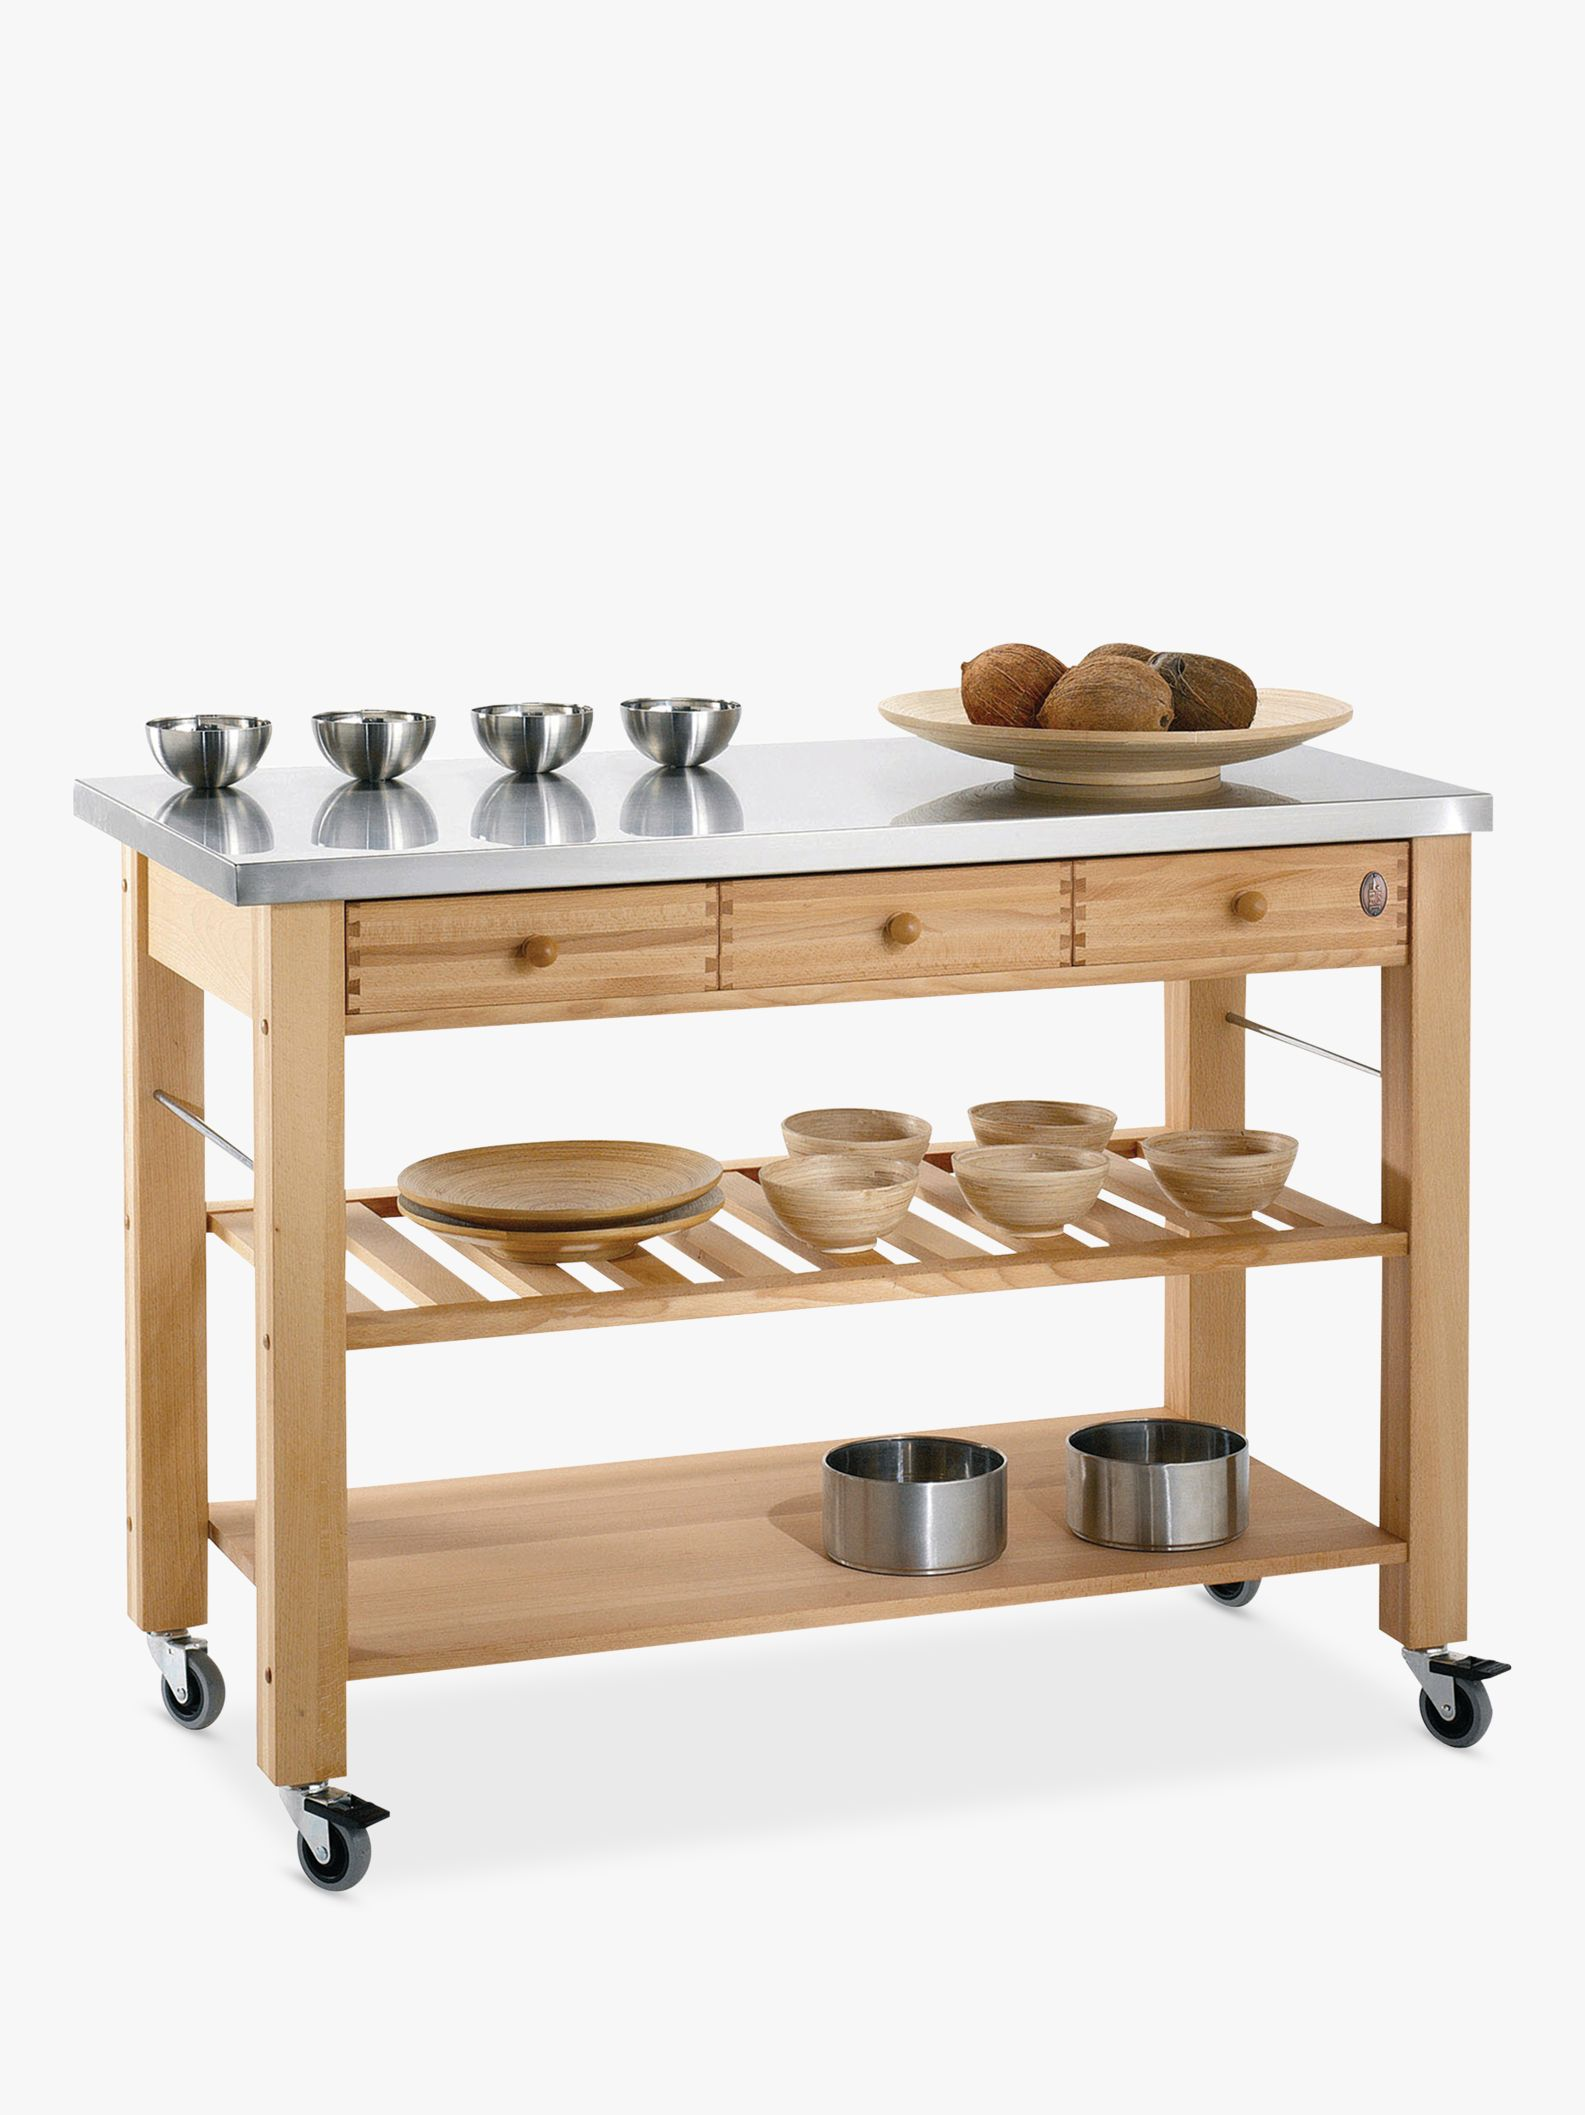 Eddingtons Eddingtons Lambourn 3 Drawer Beech Wood Butchers Trolley with Stainless Steel Top